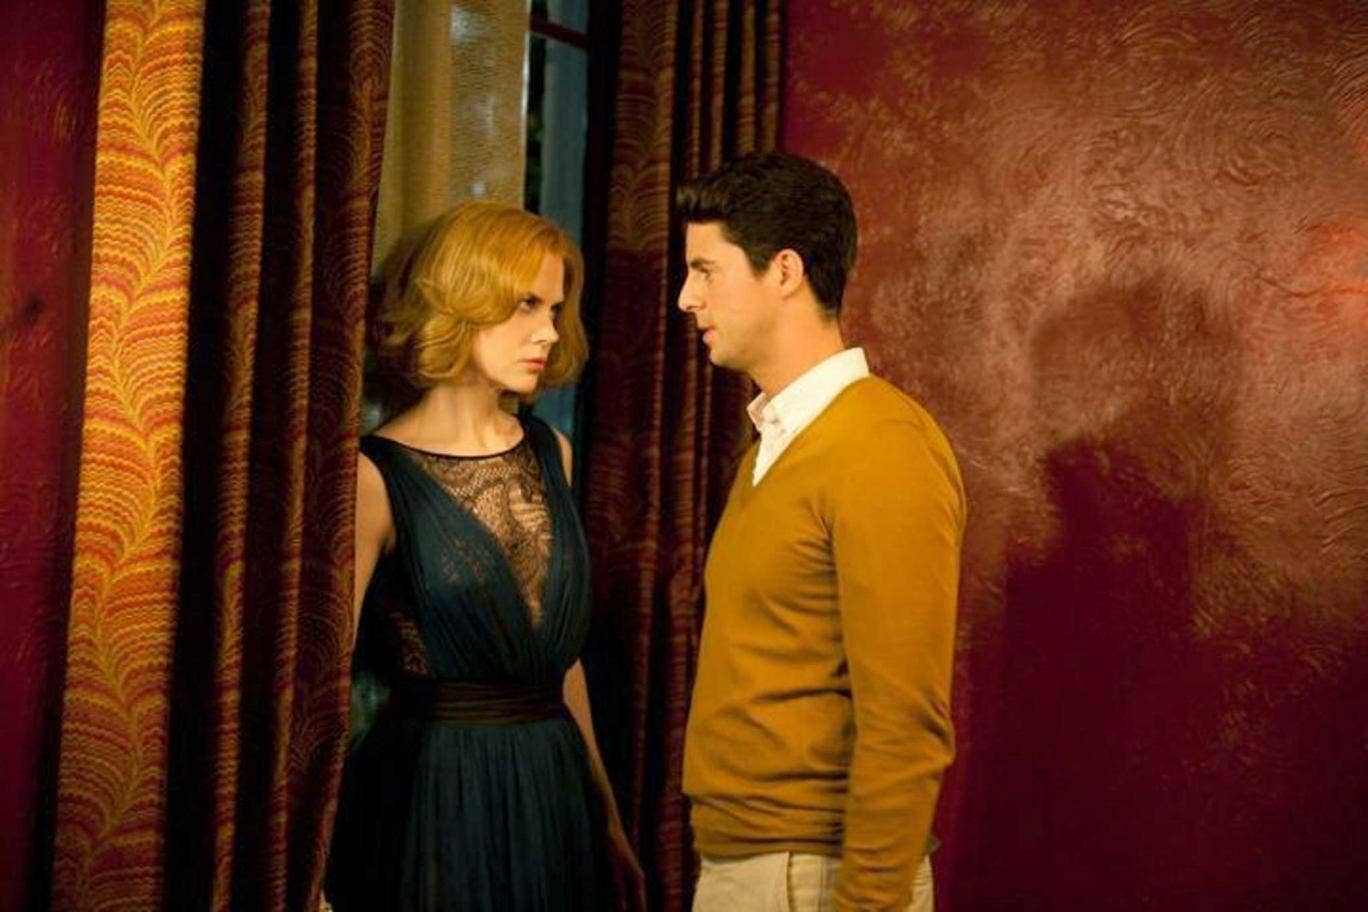 Family ties: Nicole Kidman and Matthew Goode star in Park Chan-wook's psychological thriller 'Stoker'